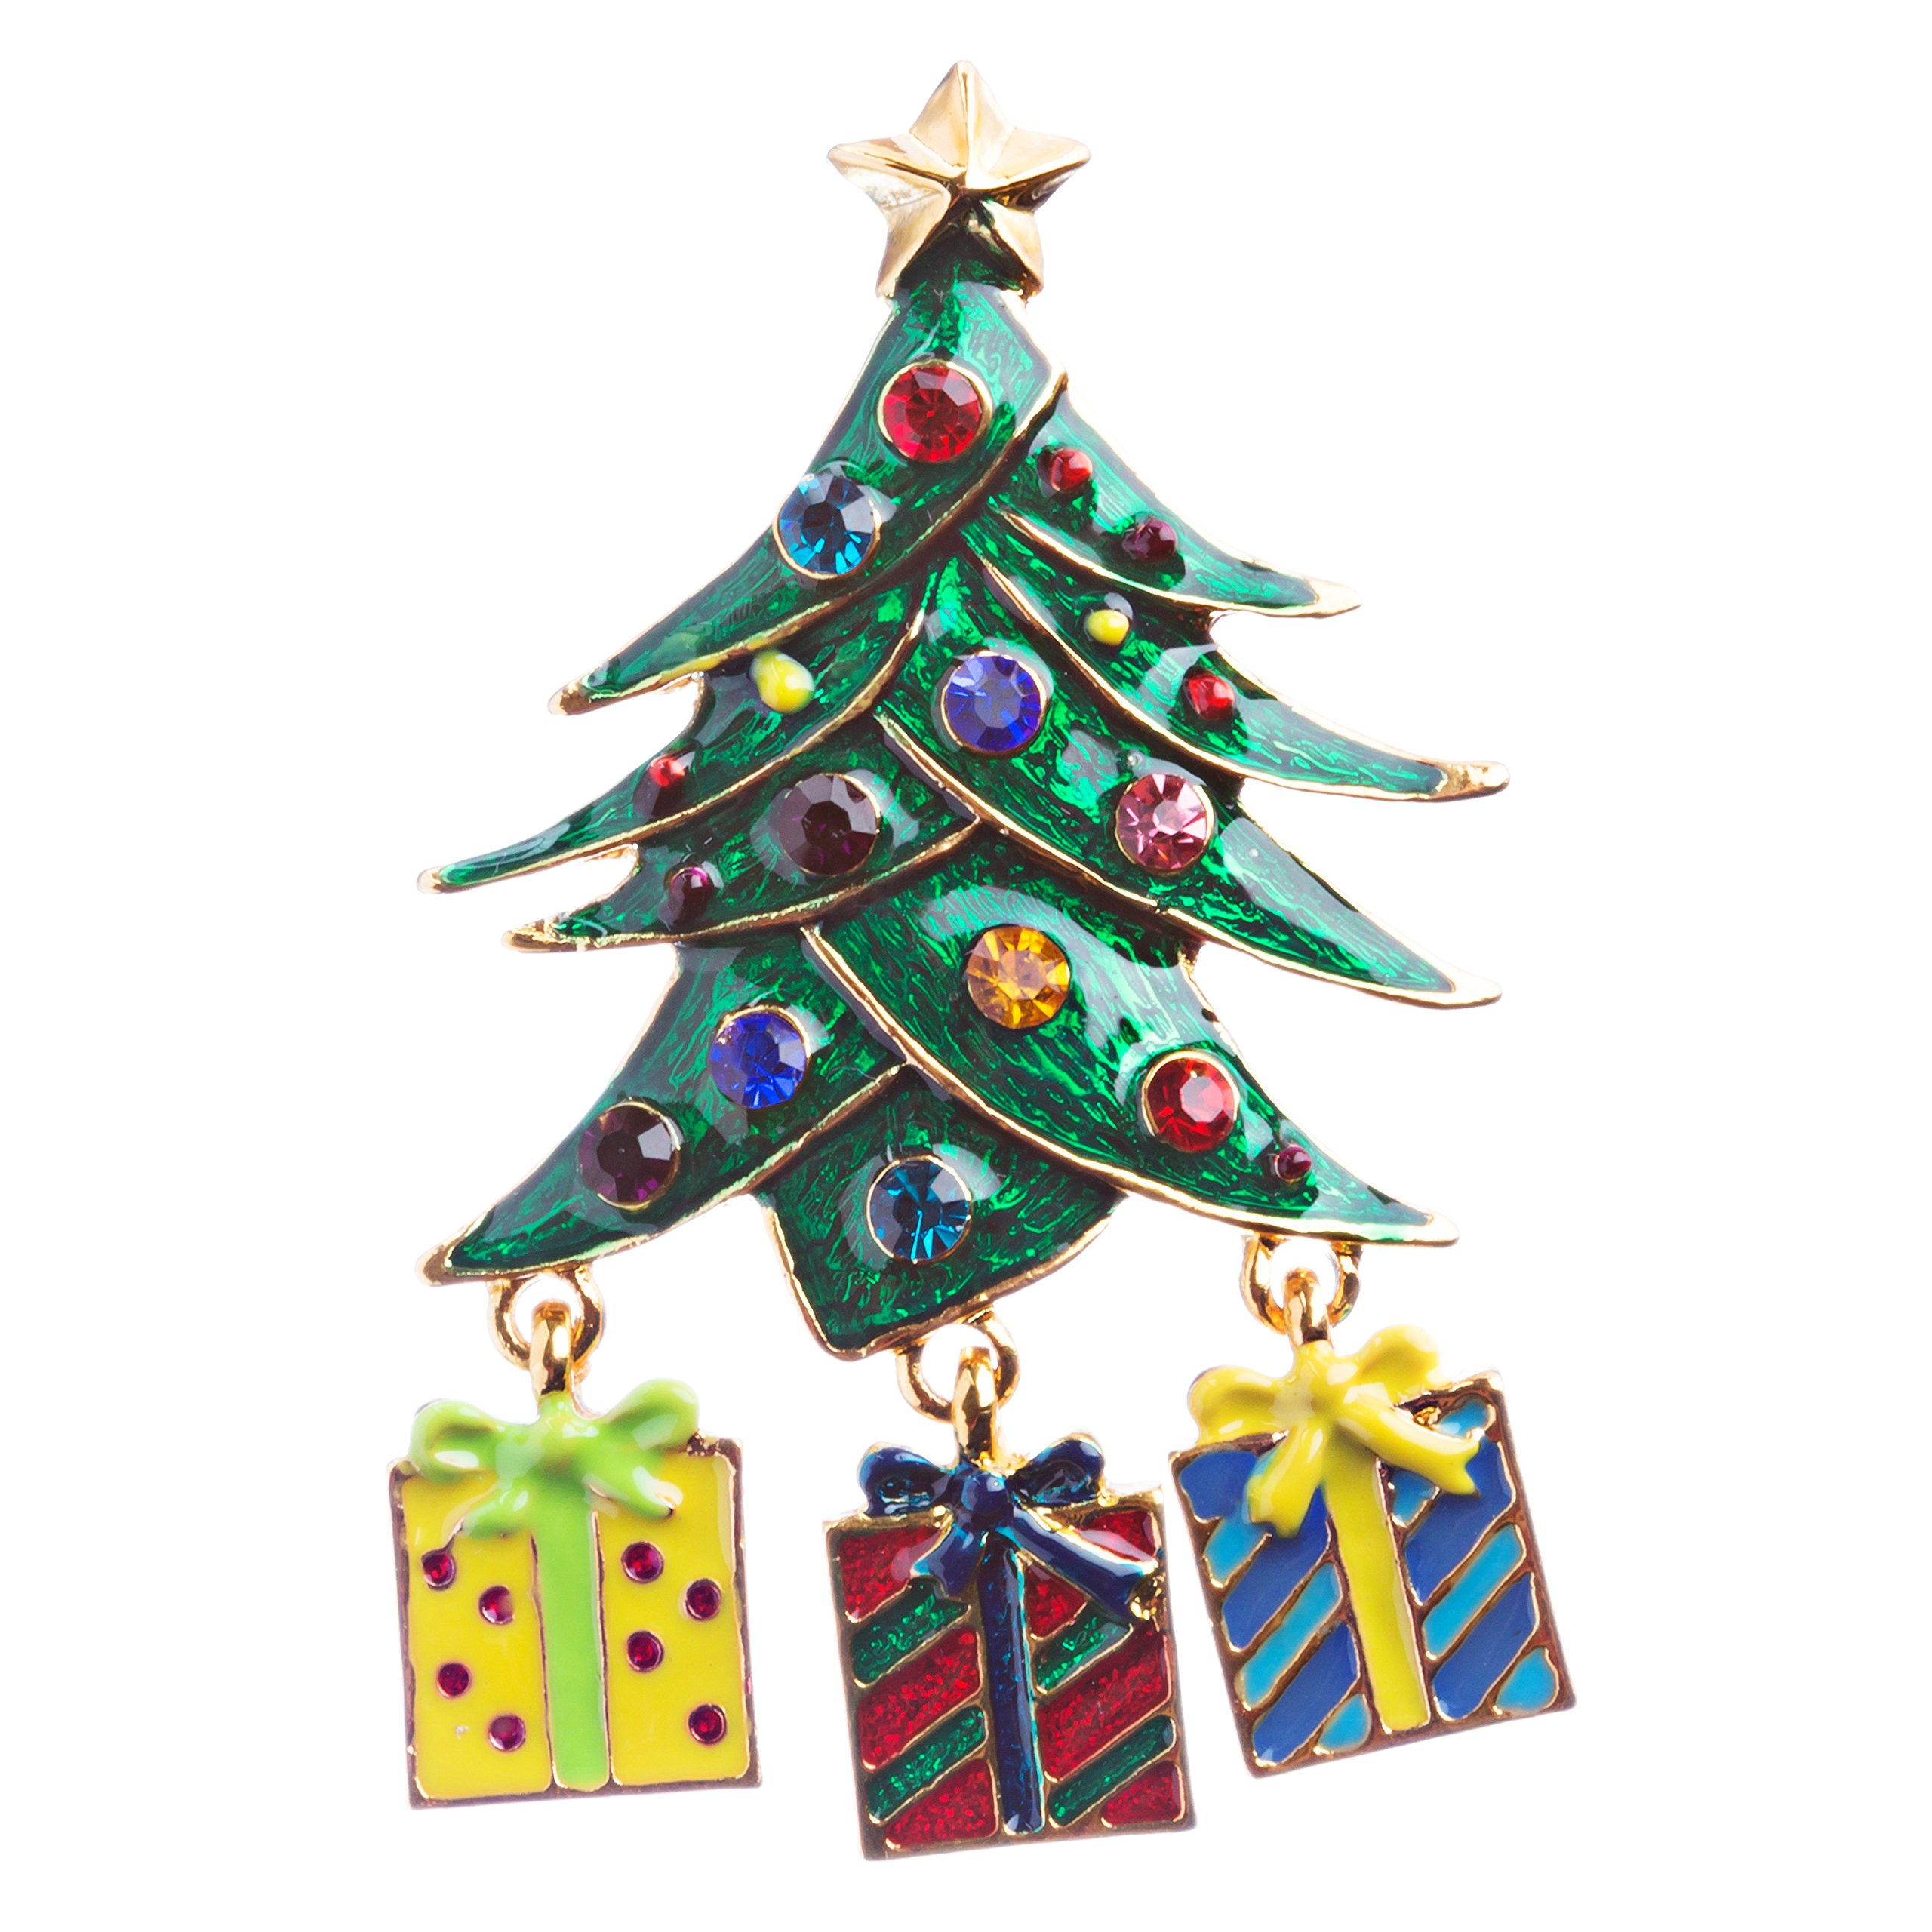 ACCESSORIESFOREVER Christmas Jewelry Crystal Rhinestone Holiday Gift Presents Tree Brooch Pin BH125